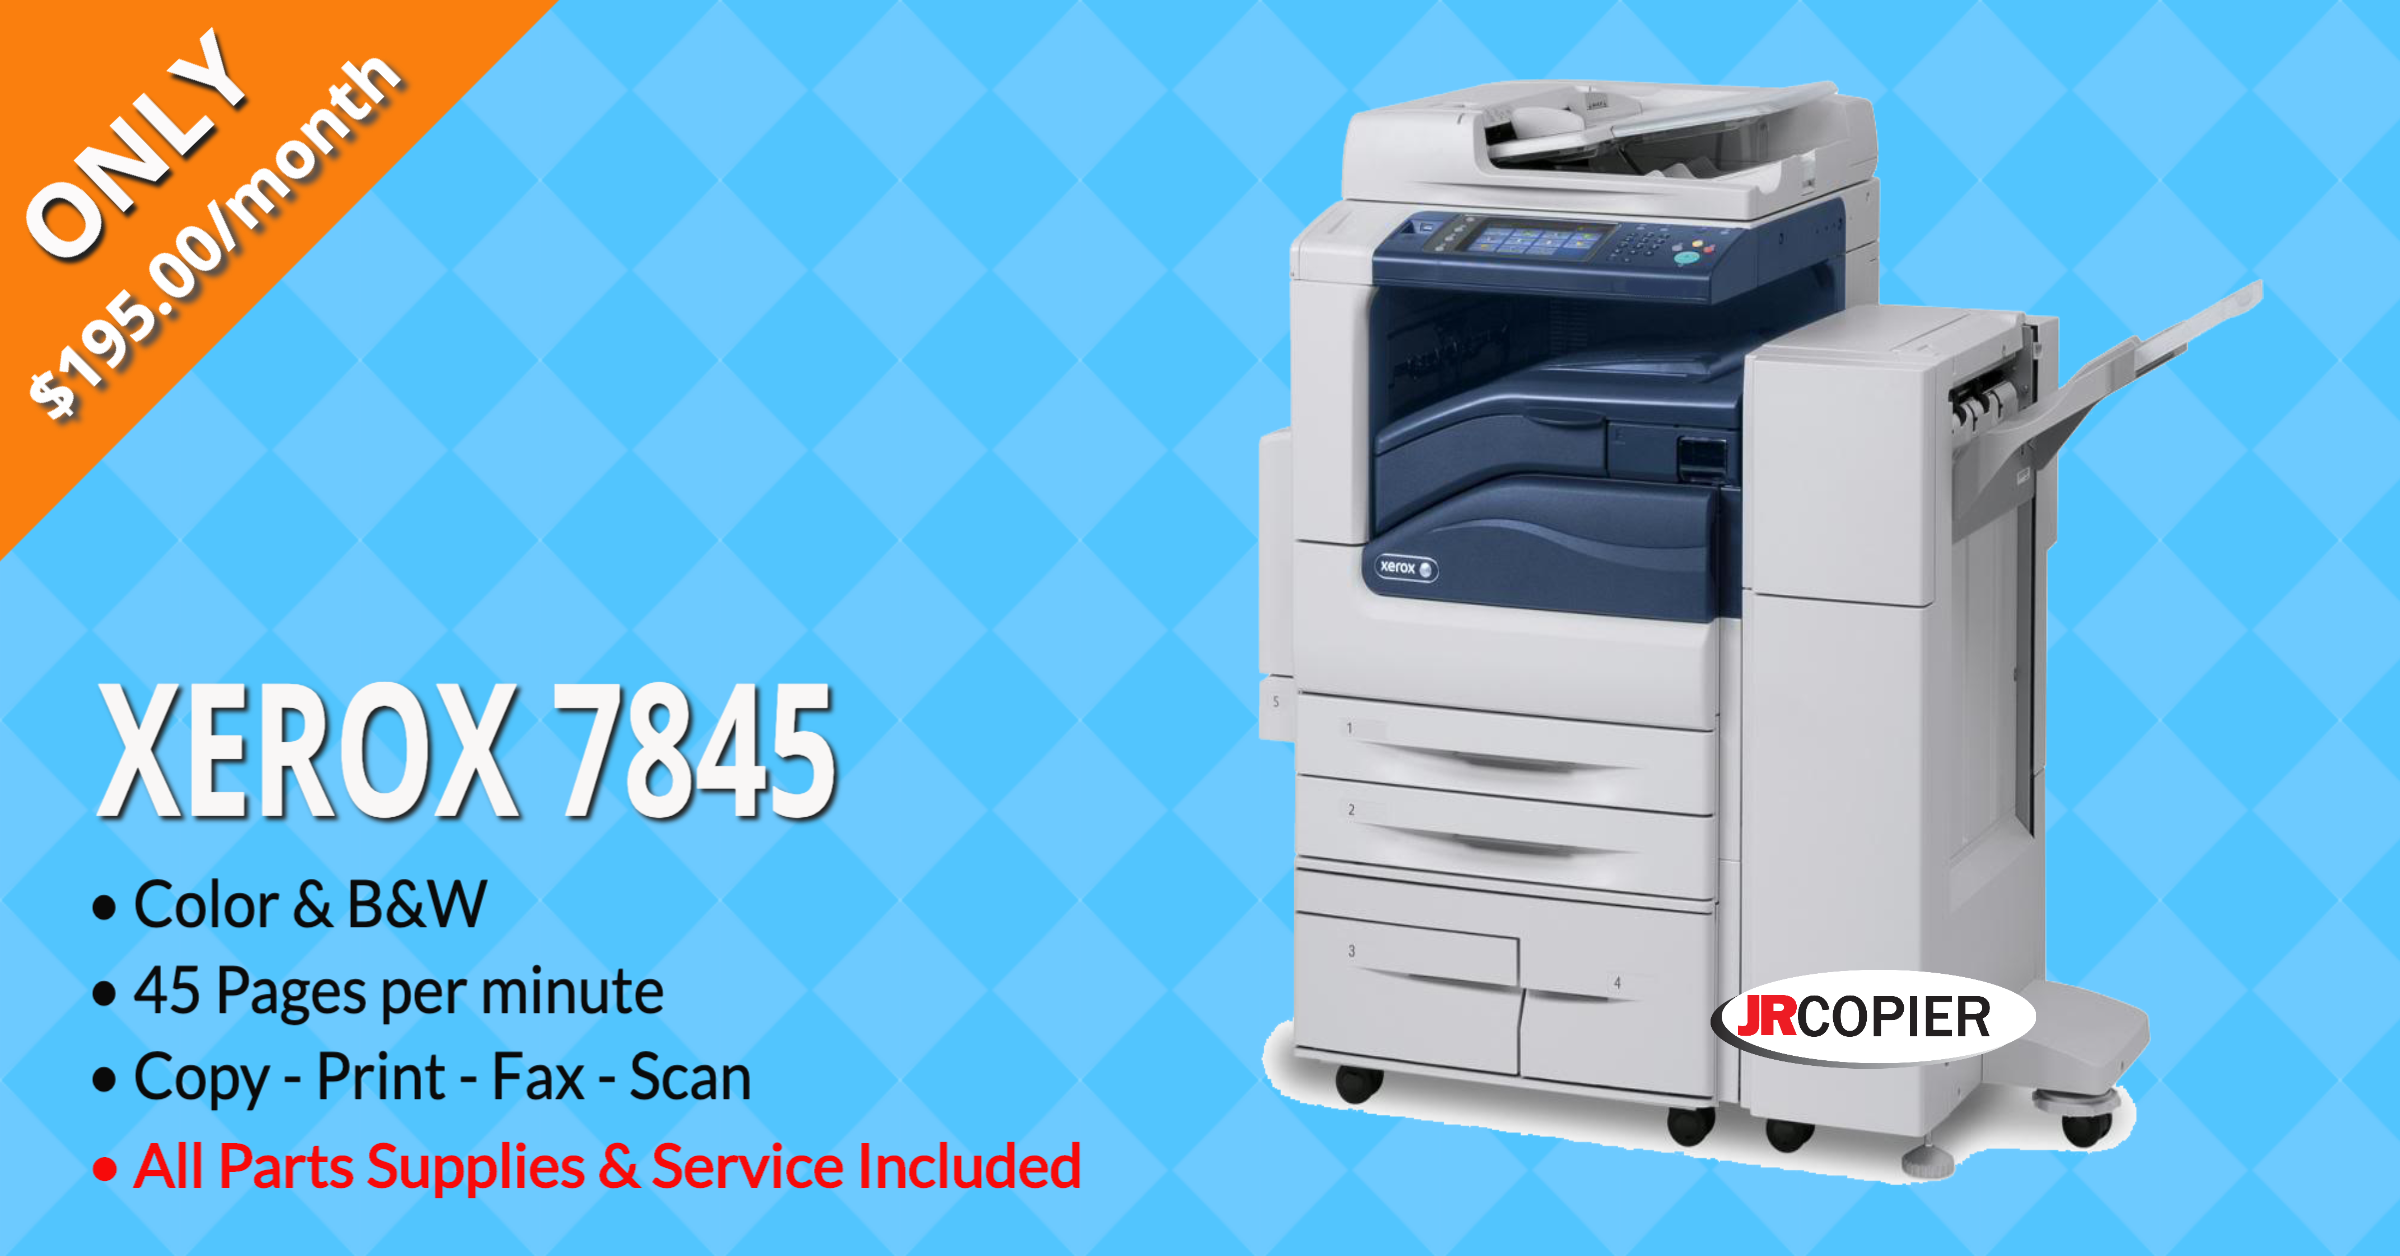 Office Printer Rental 13031, 13078, 13084, 13108, 13110, 13120, 13205, 13210, 13215, 13219